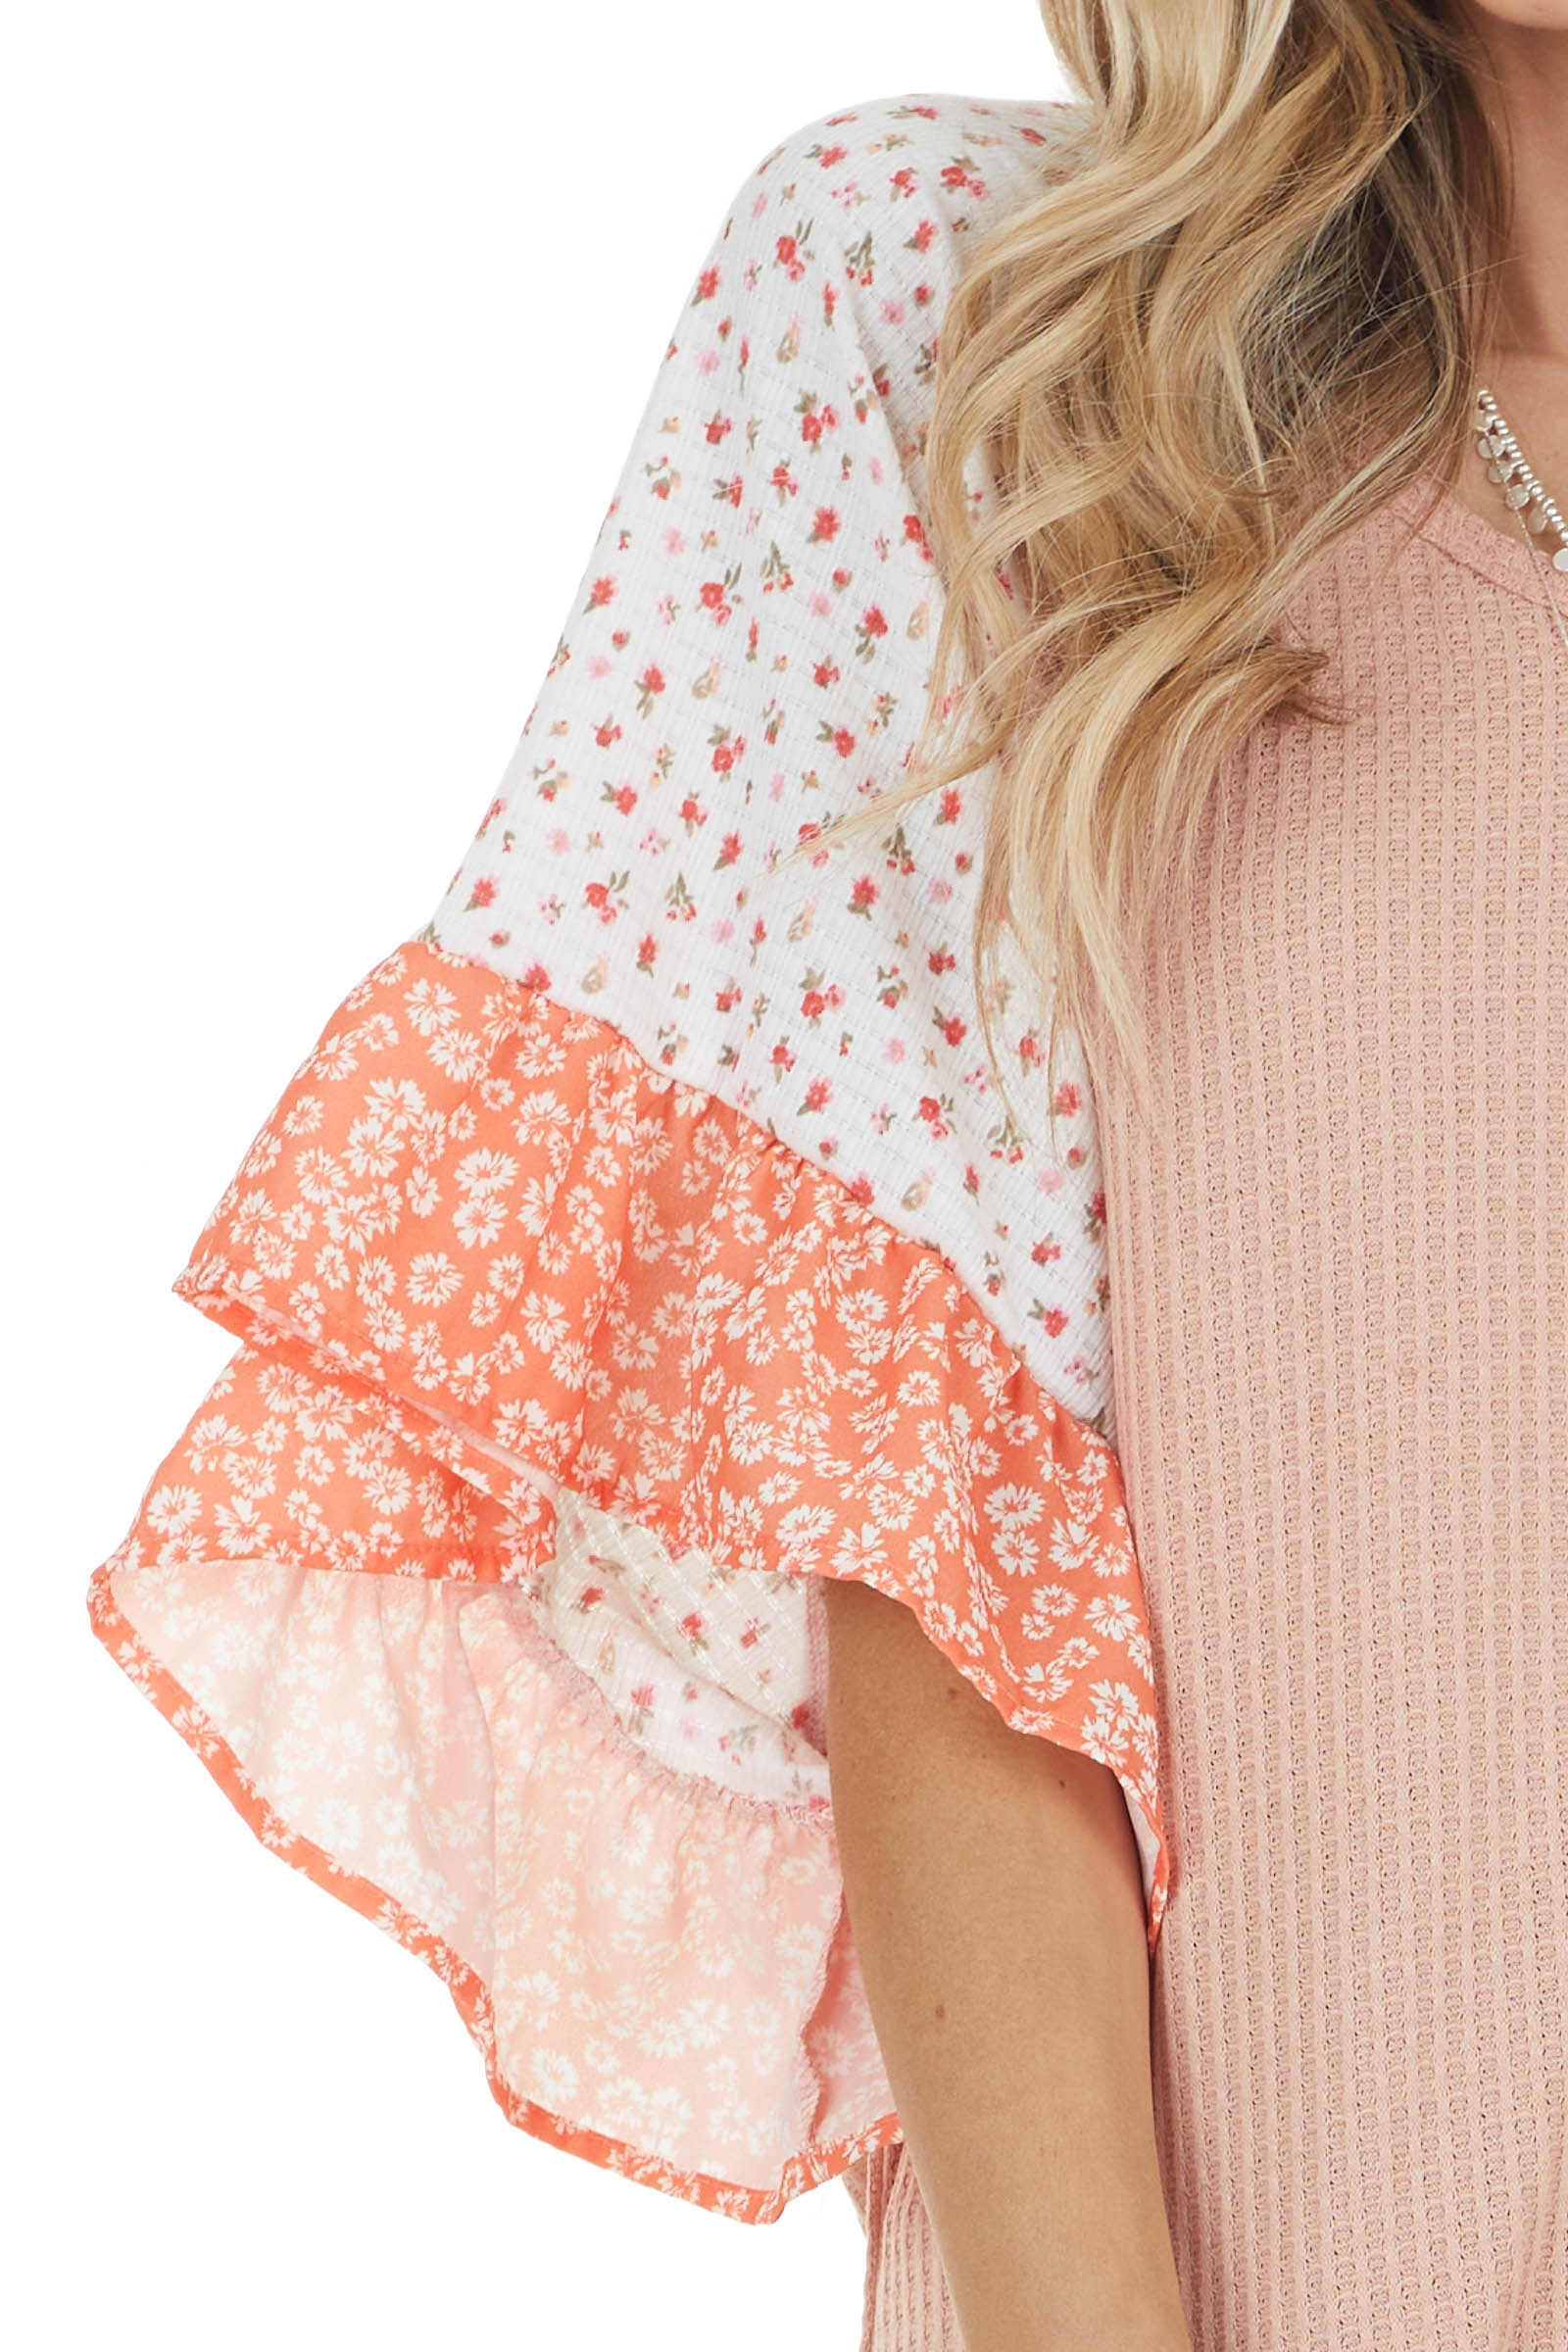 Dusty Coral Waffle Knit Top with Floral Print Ruffle Sleeves